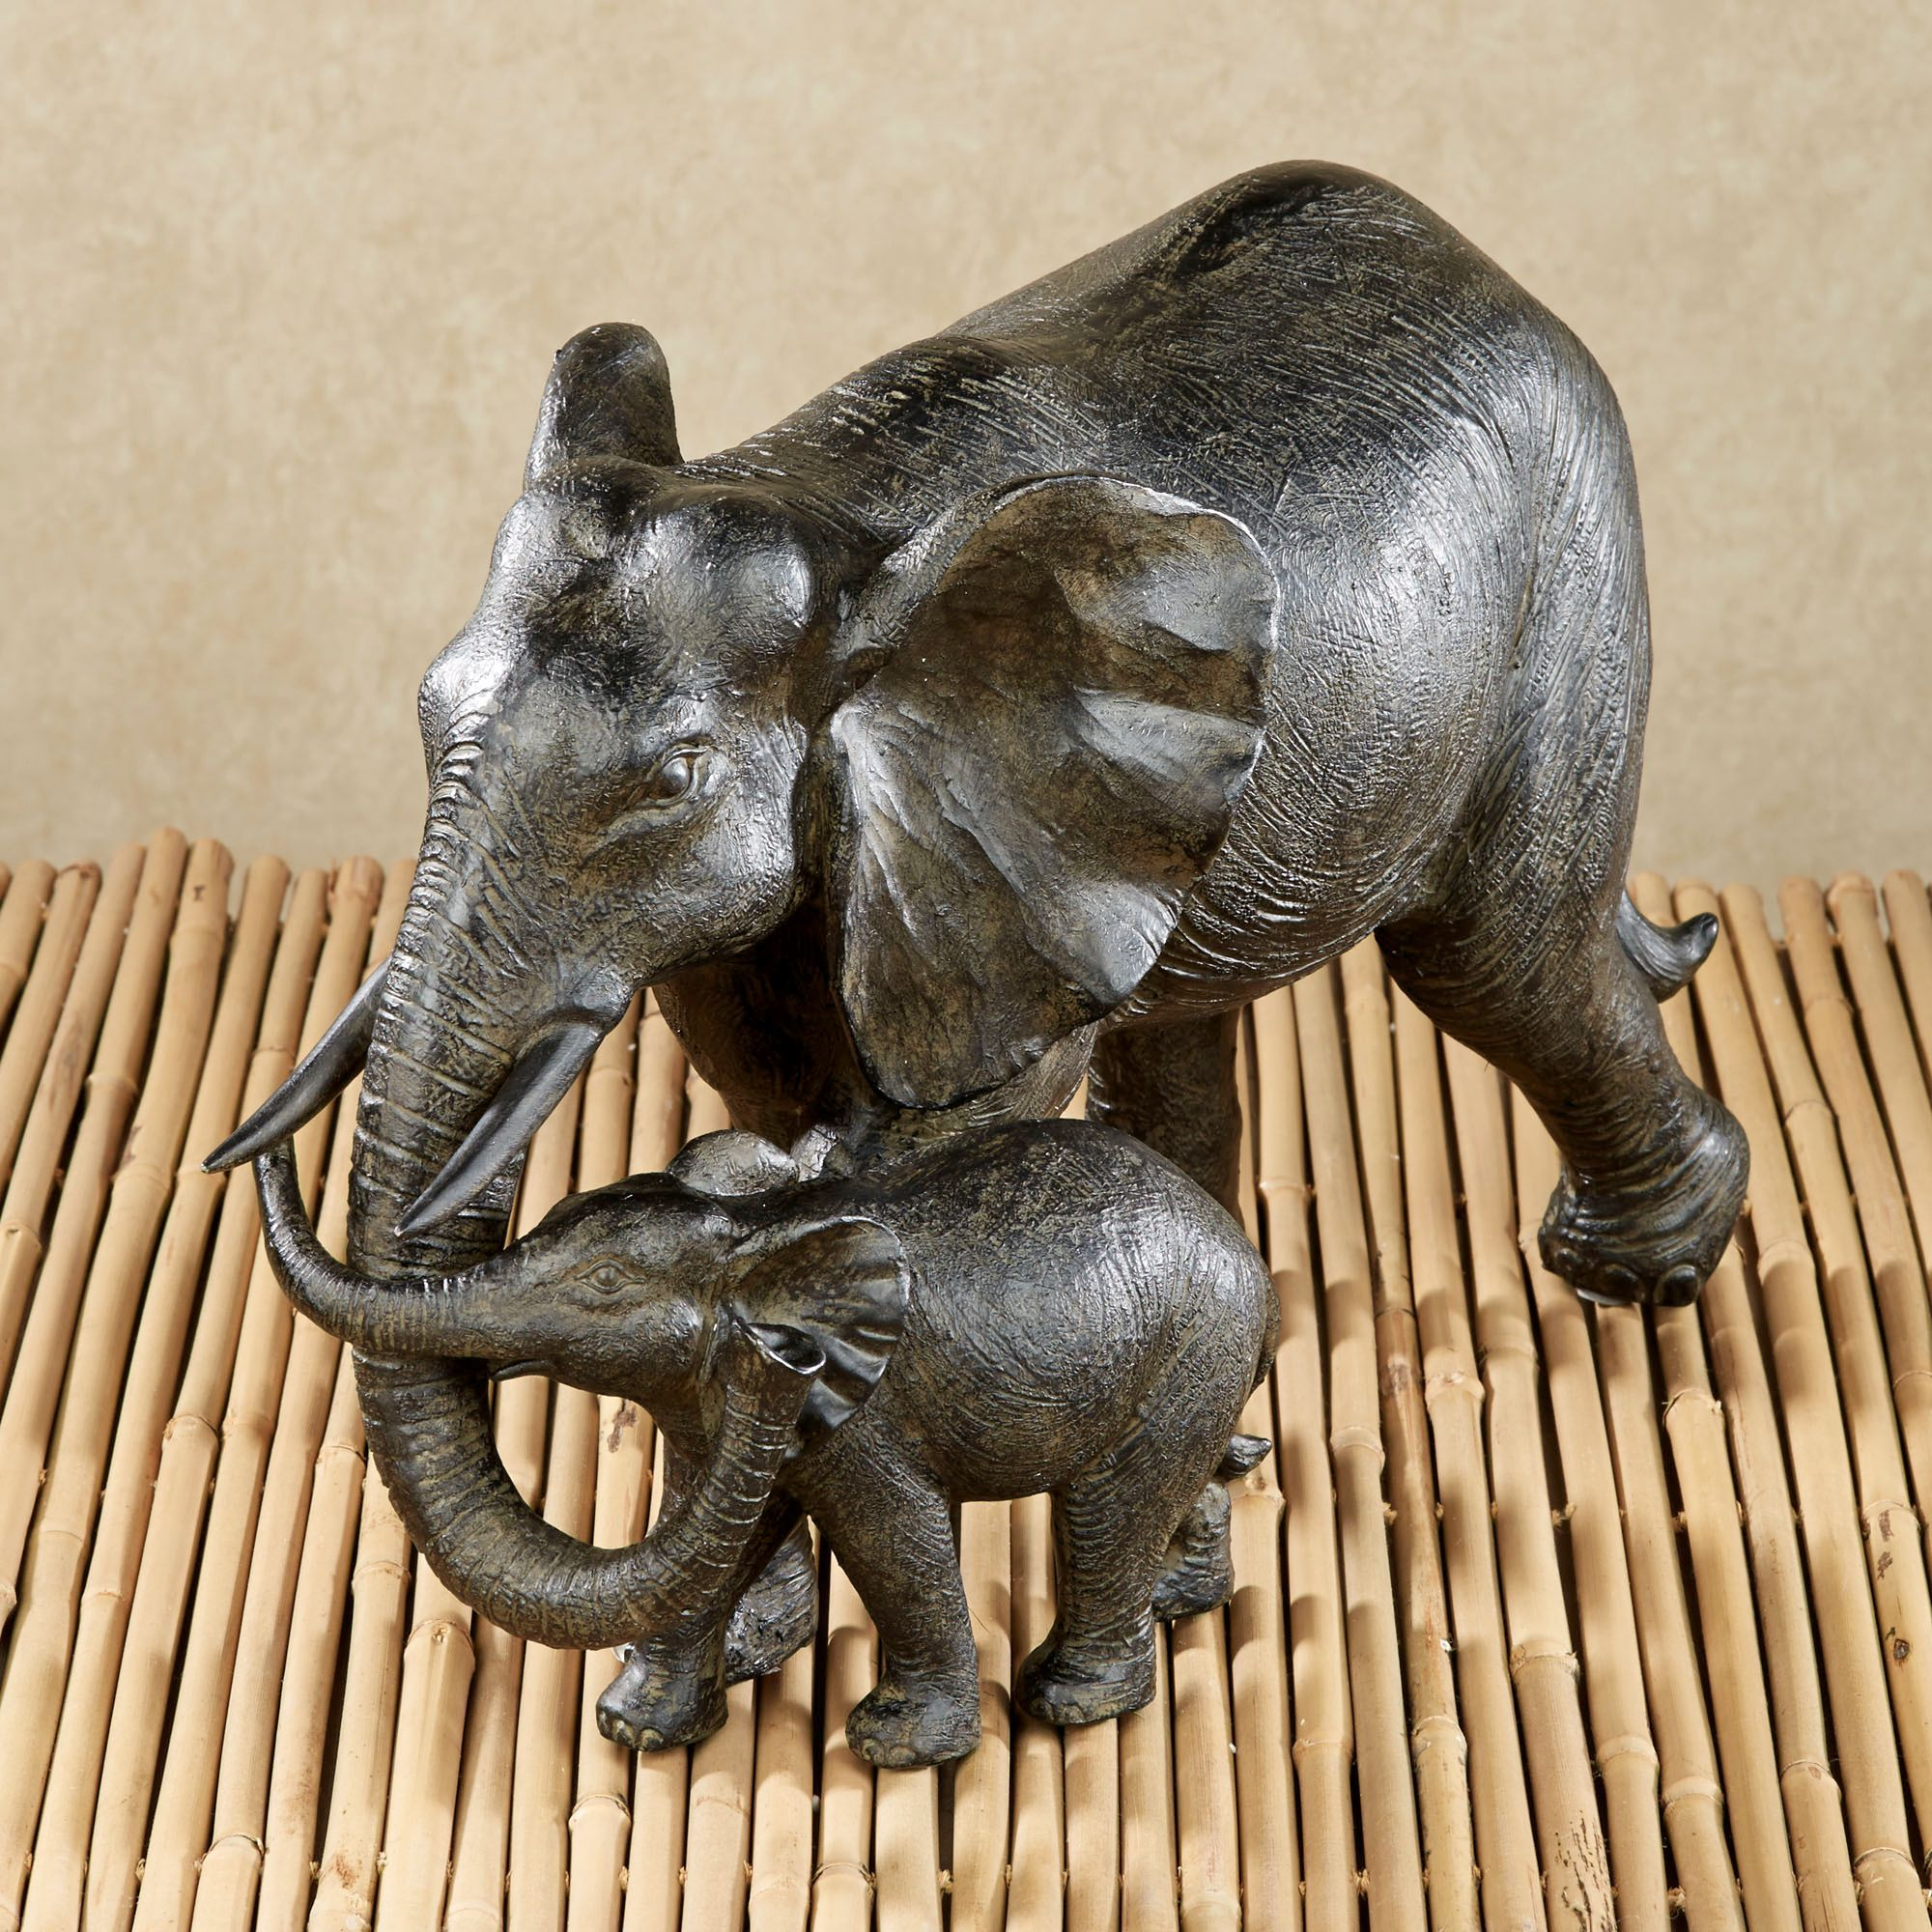 Matriarch and Calf Elephant Table Sculpture ~ $49.99 at touchofclass.com